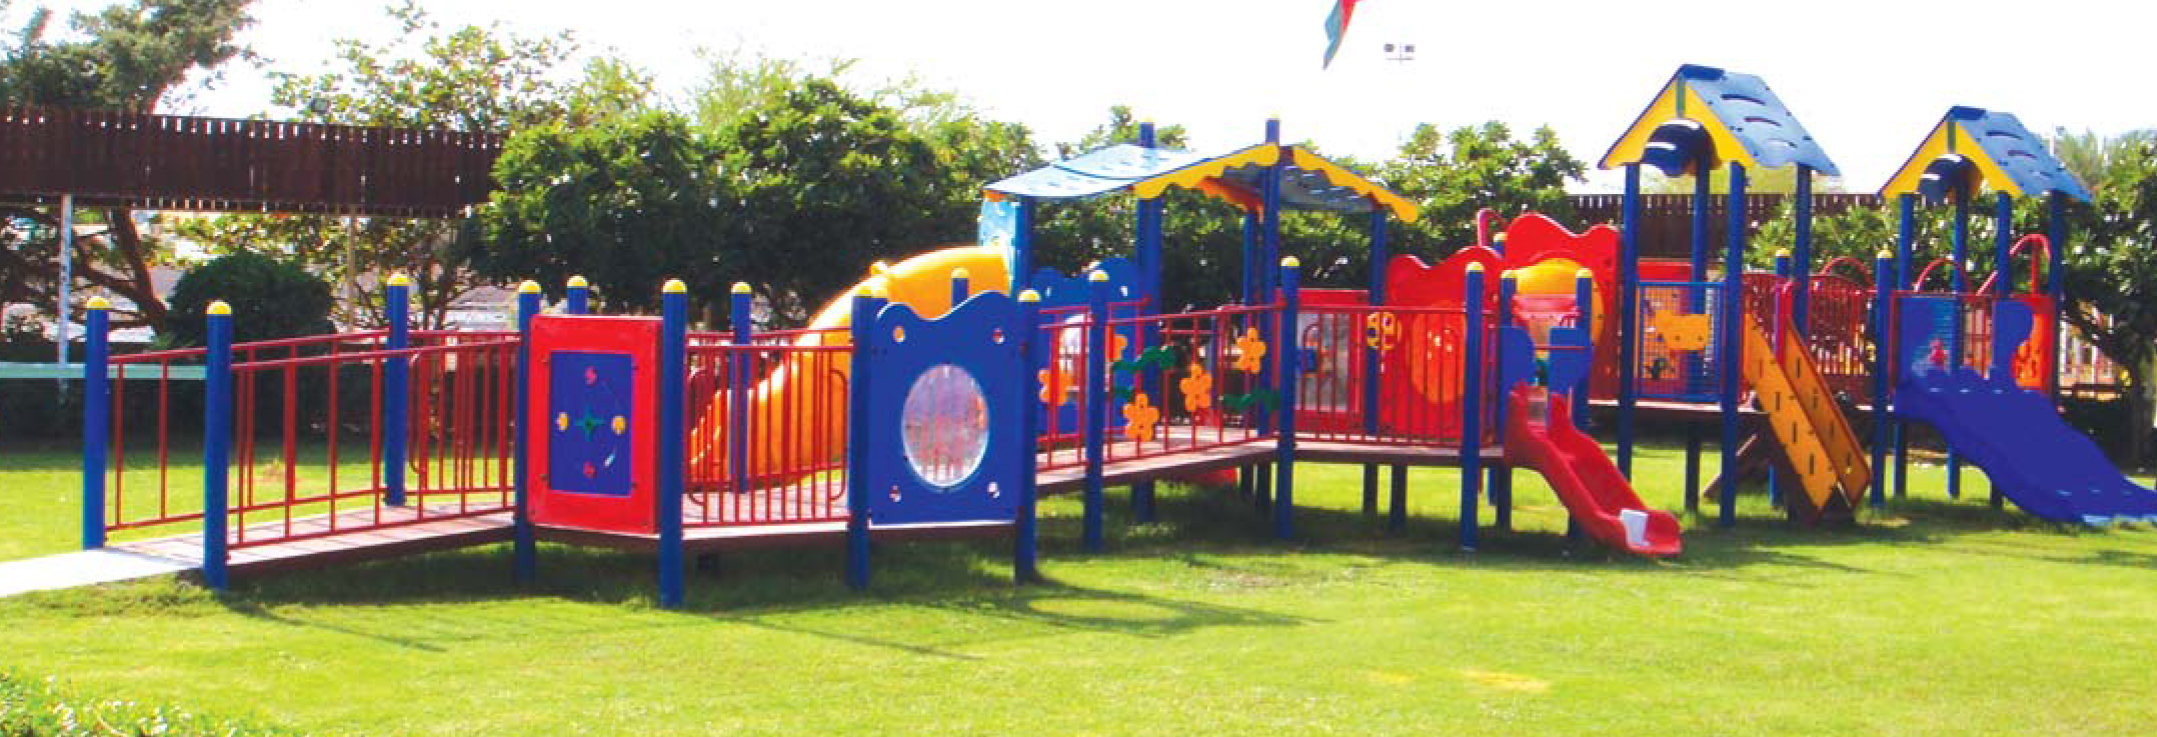 Childres Play Equipment - 1